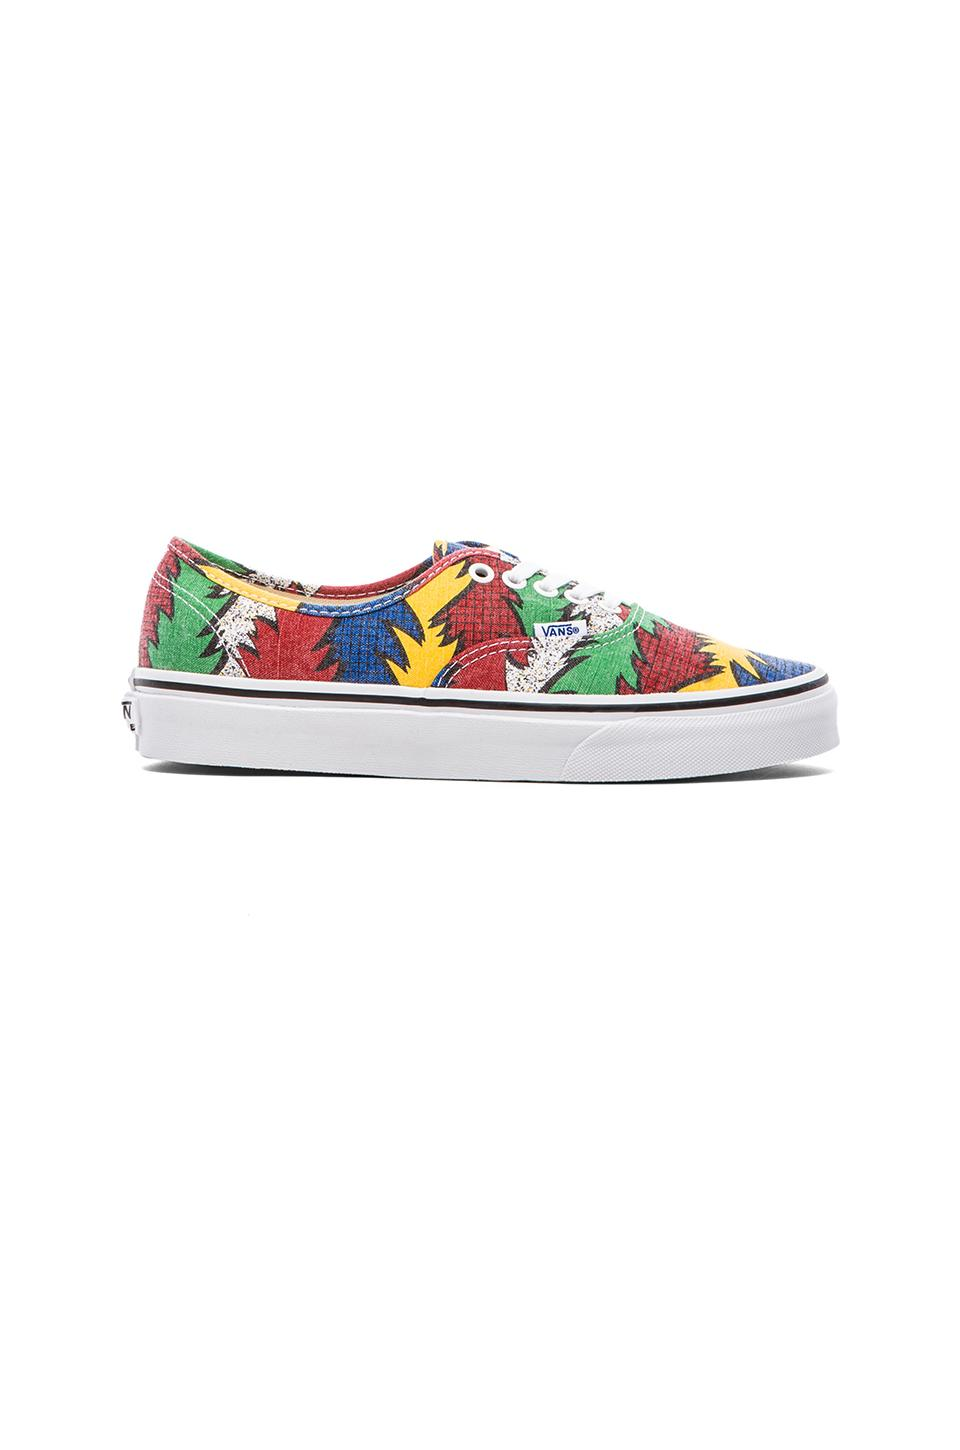 Vans Authentic Van Doren in 80s Box & Black